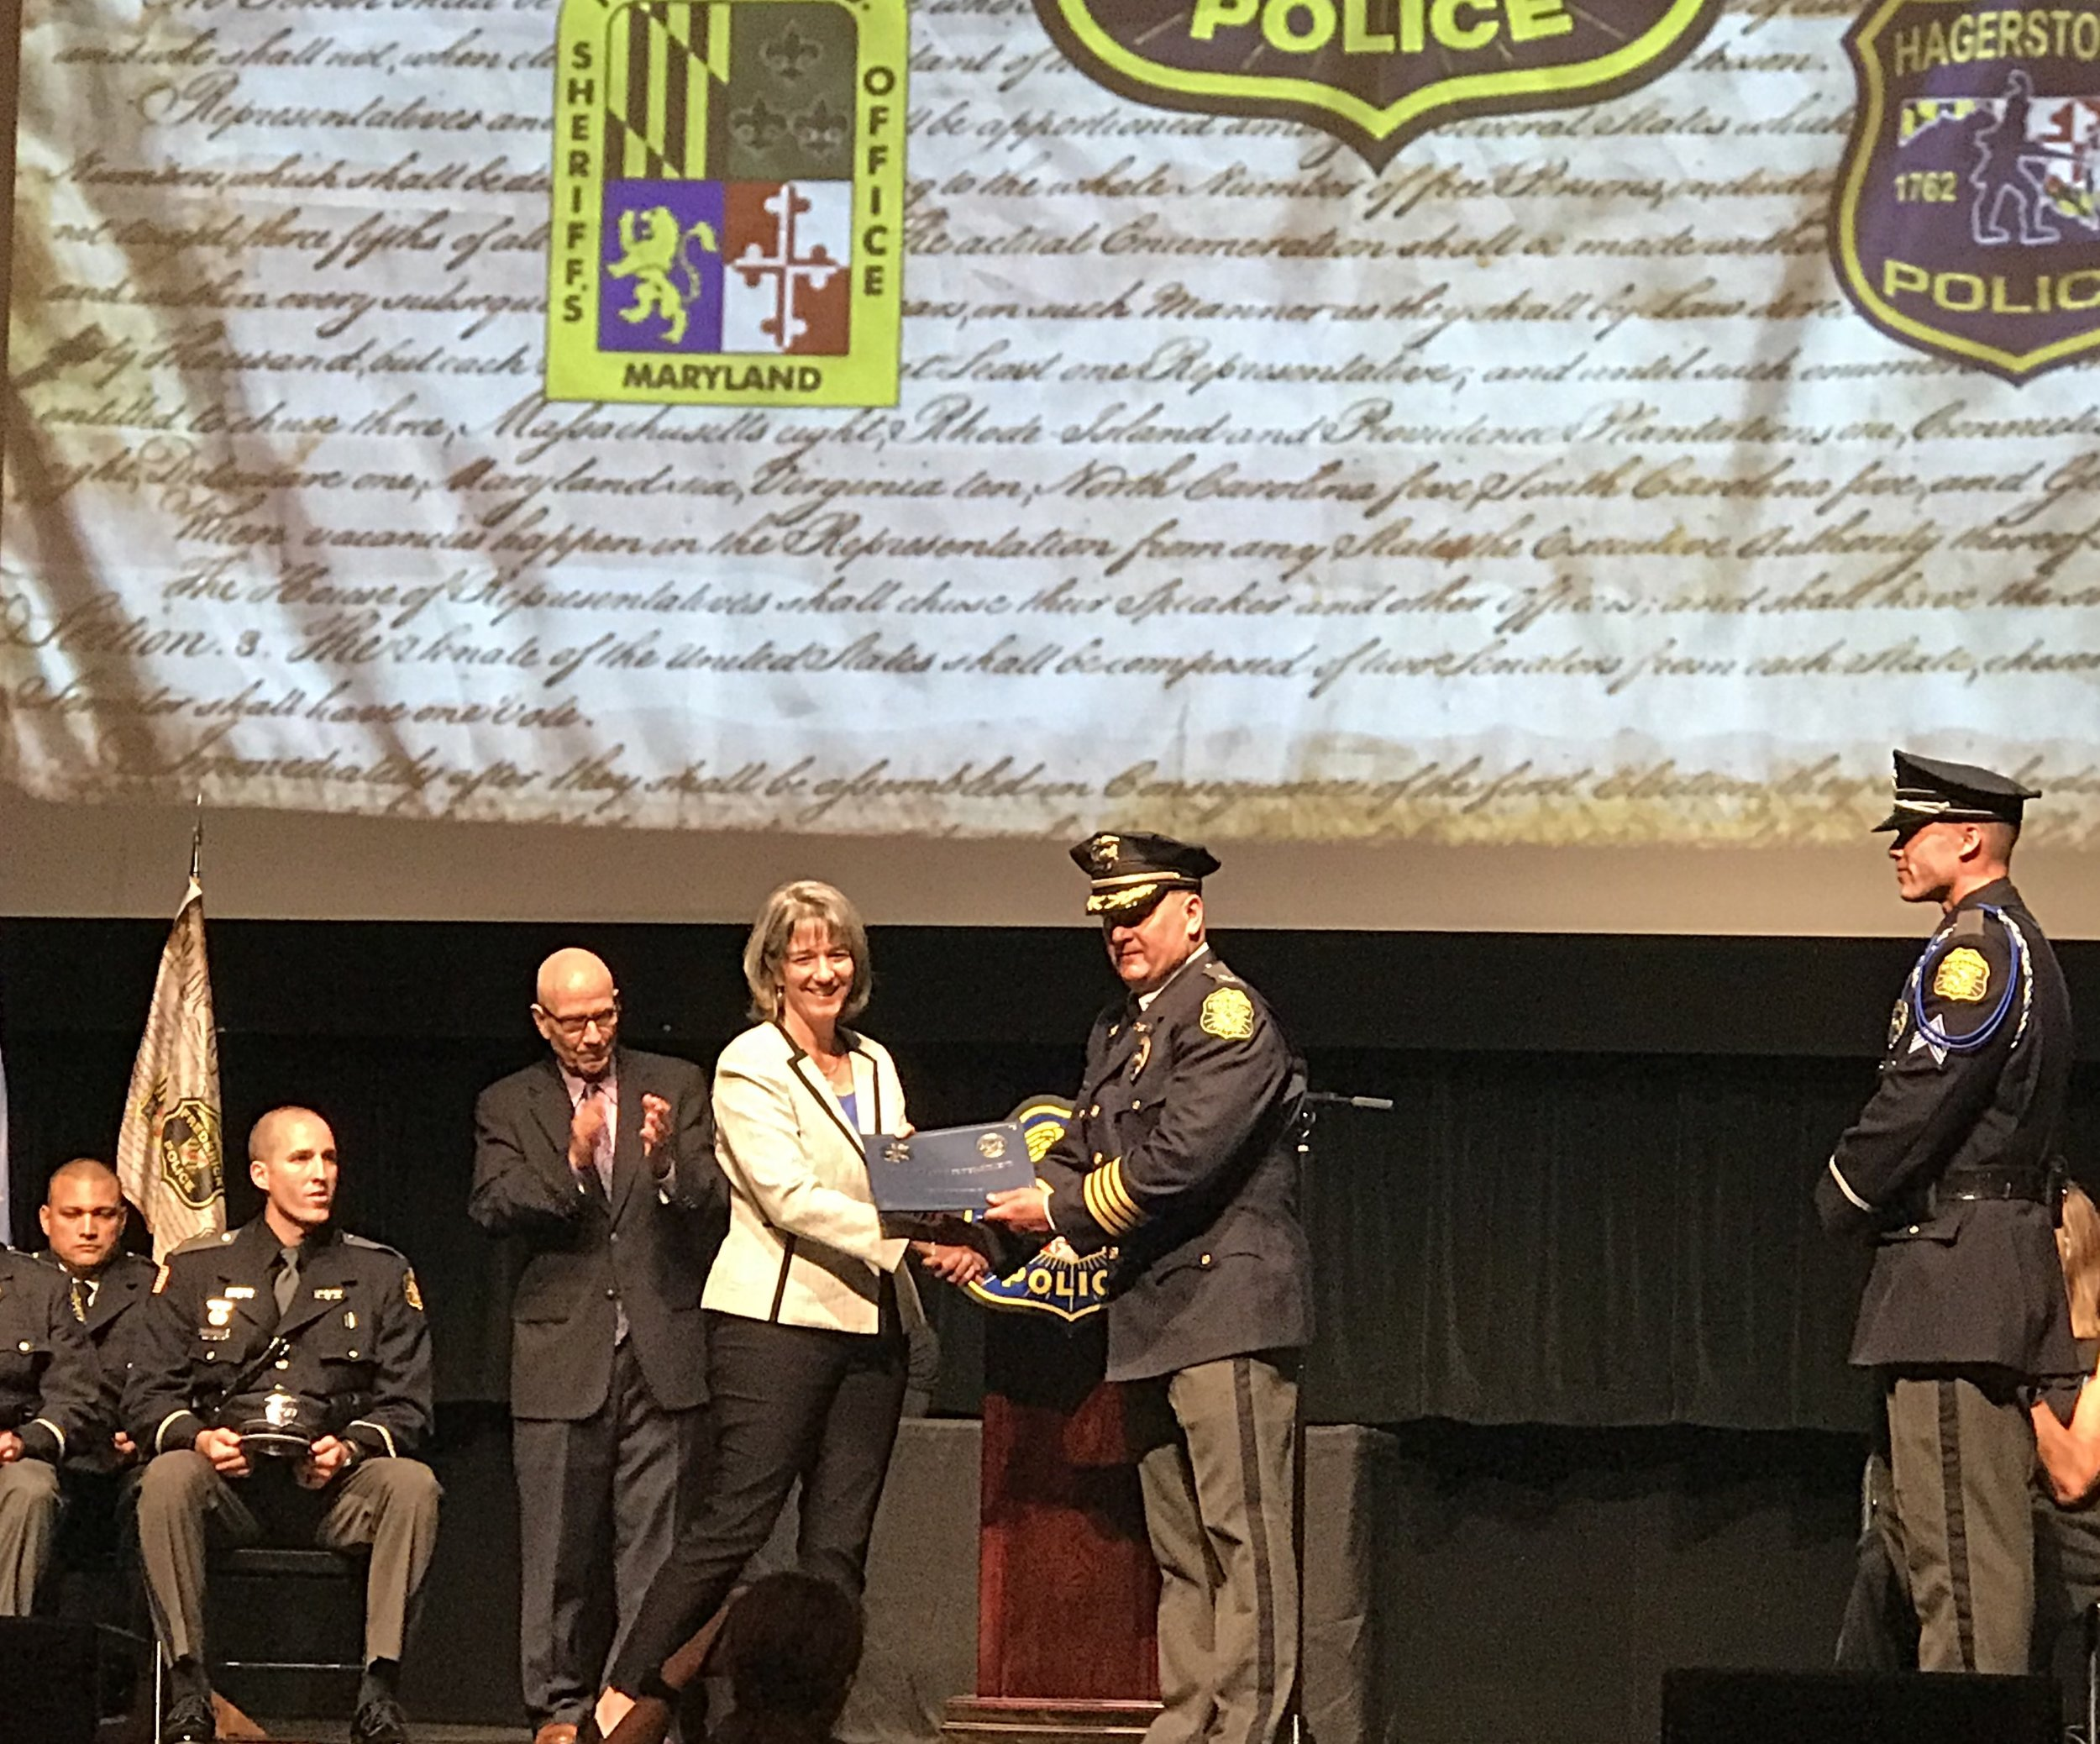 Citizen Award presented by Chief Hargis